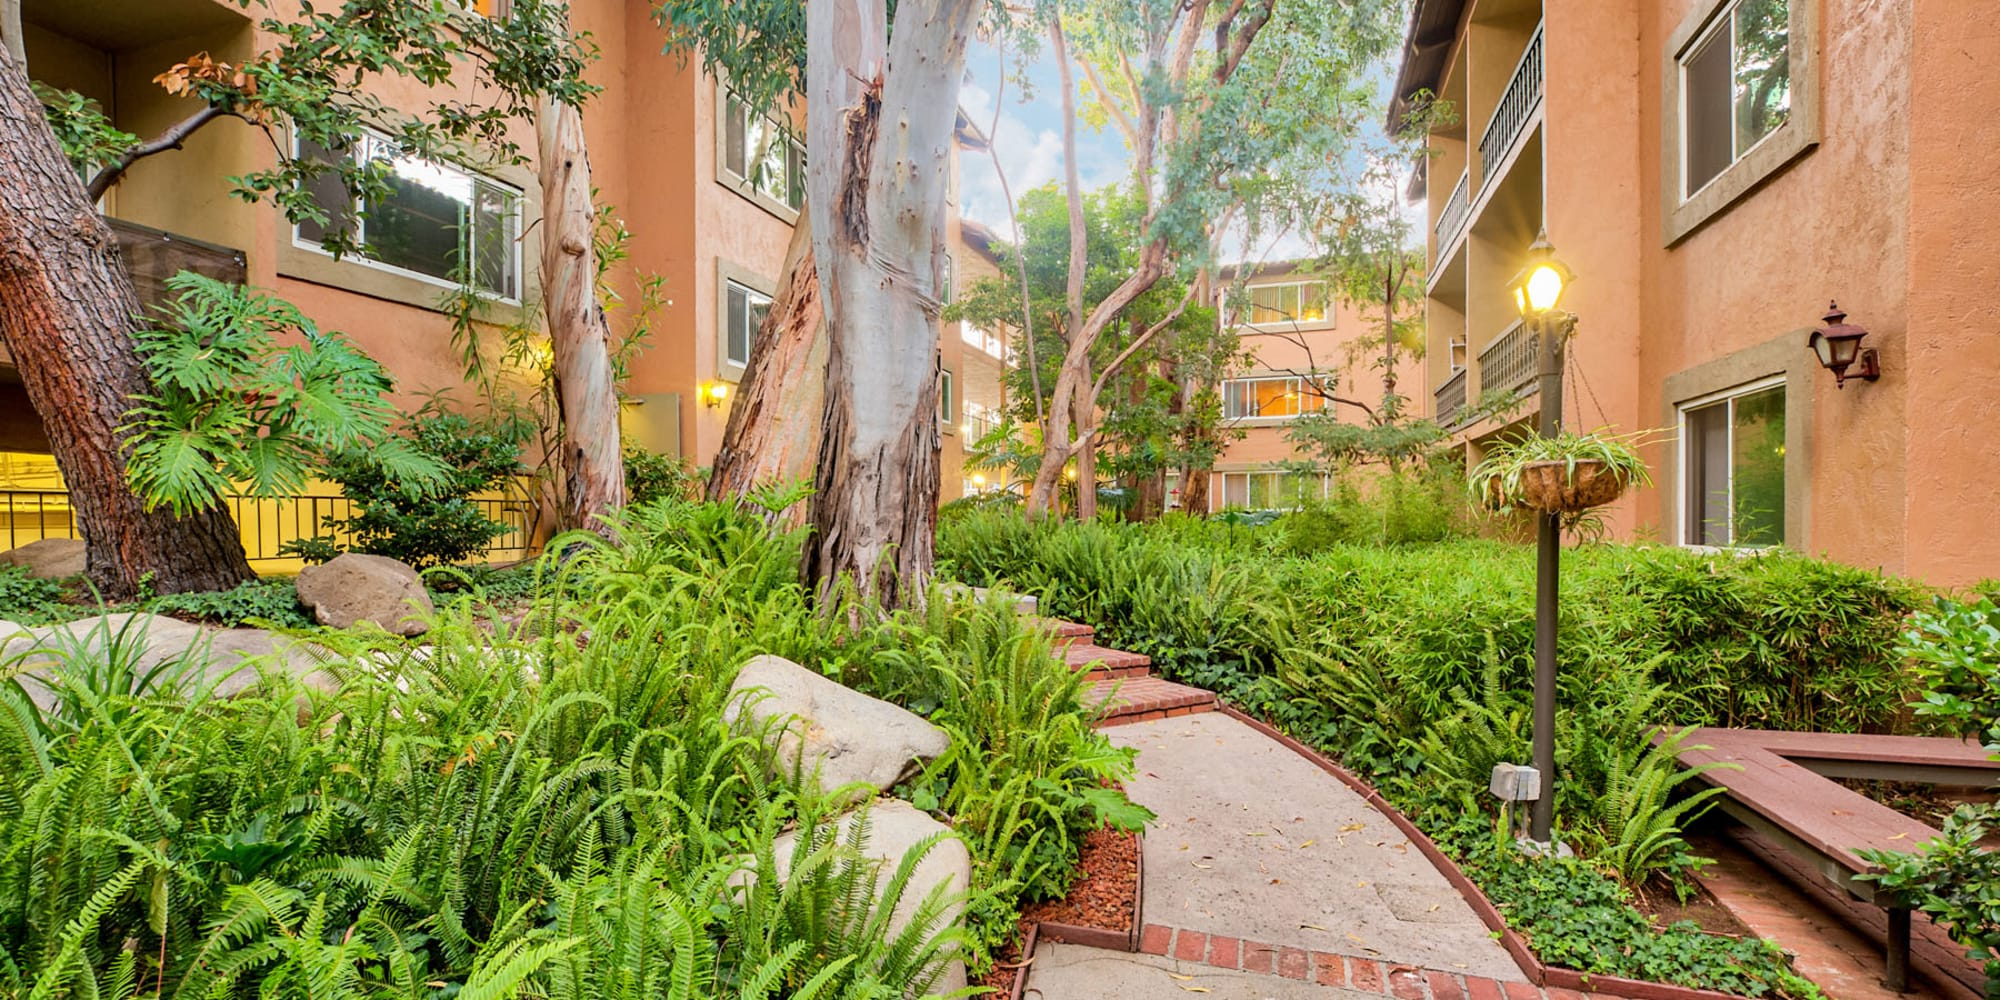 Winding pathway through the thriving green landscape at Casa Granada in Los Angeles, California